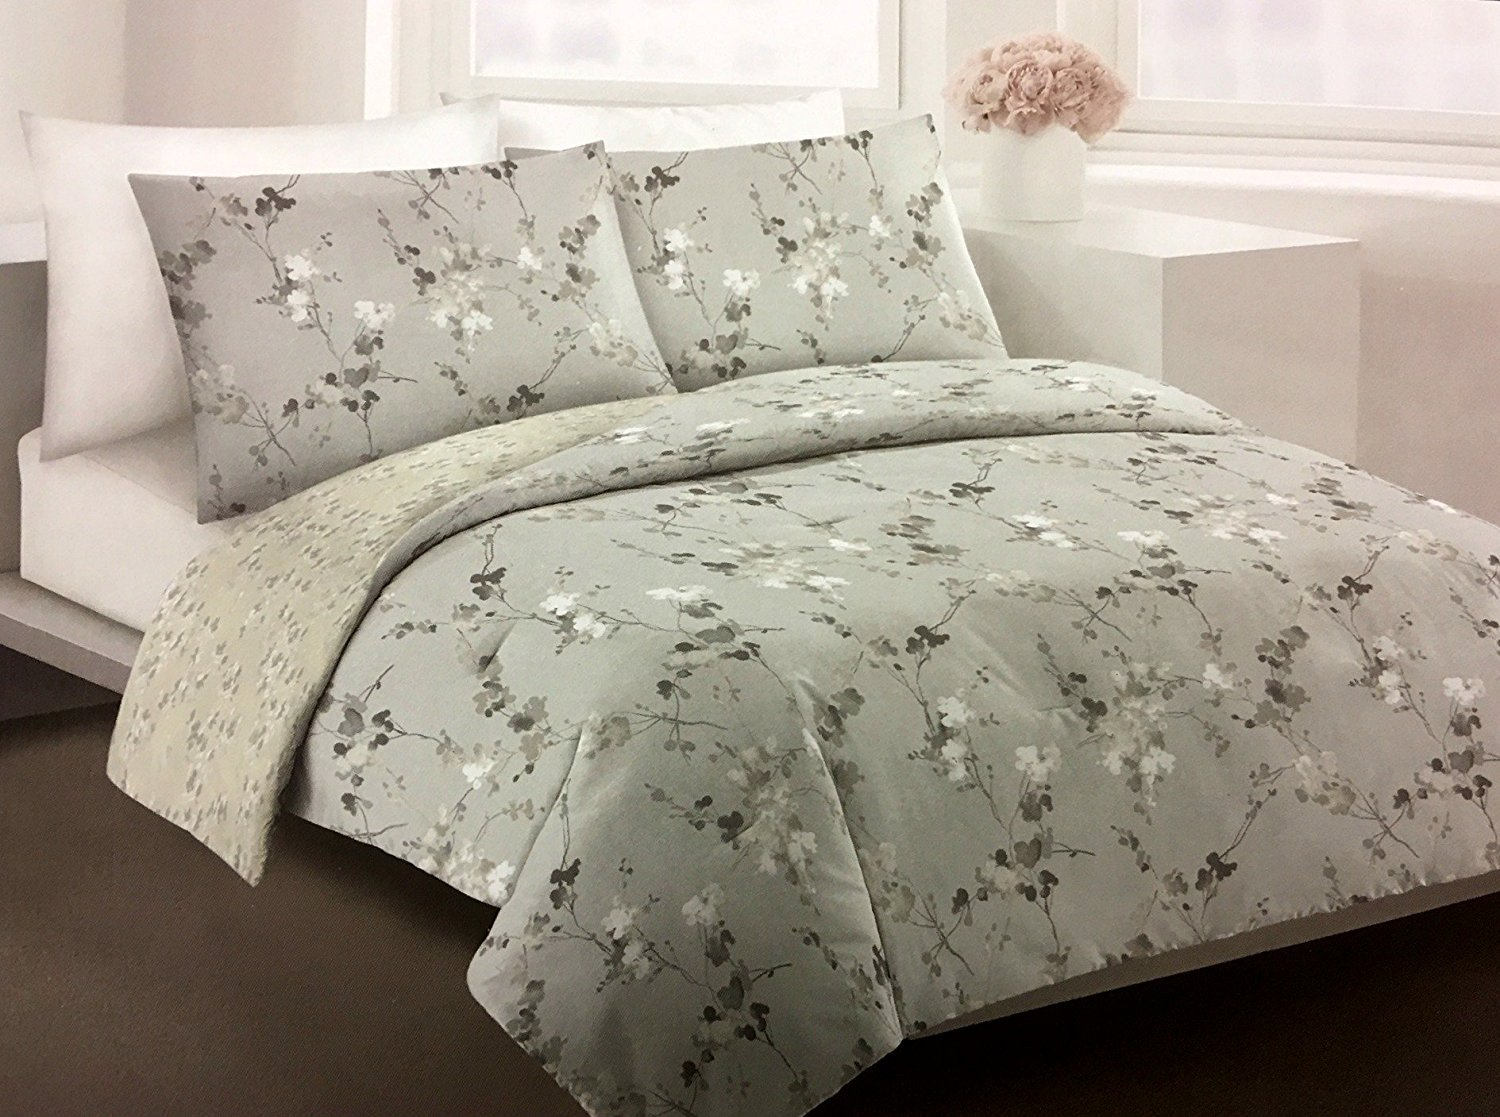 DKNY Wallflower Printemps Vines KING Duvet 3-pc Set | Watercolor Floral Blooms and Branches | 100% Cotton Gray, Tan, Taupe | Reversible by DKNY